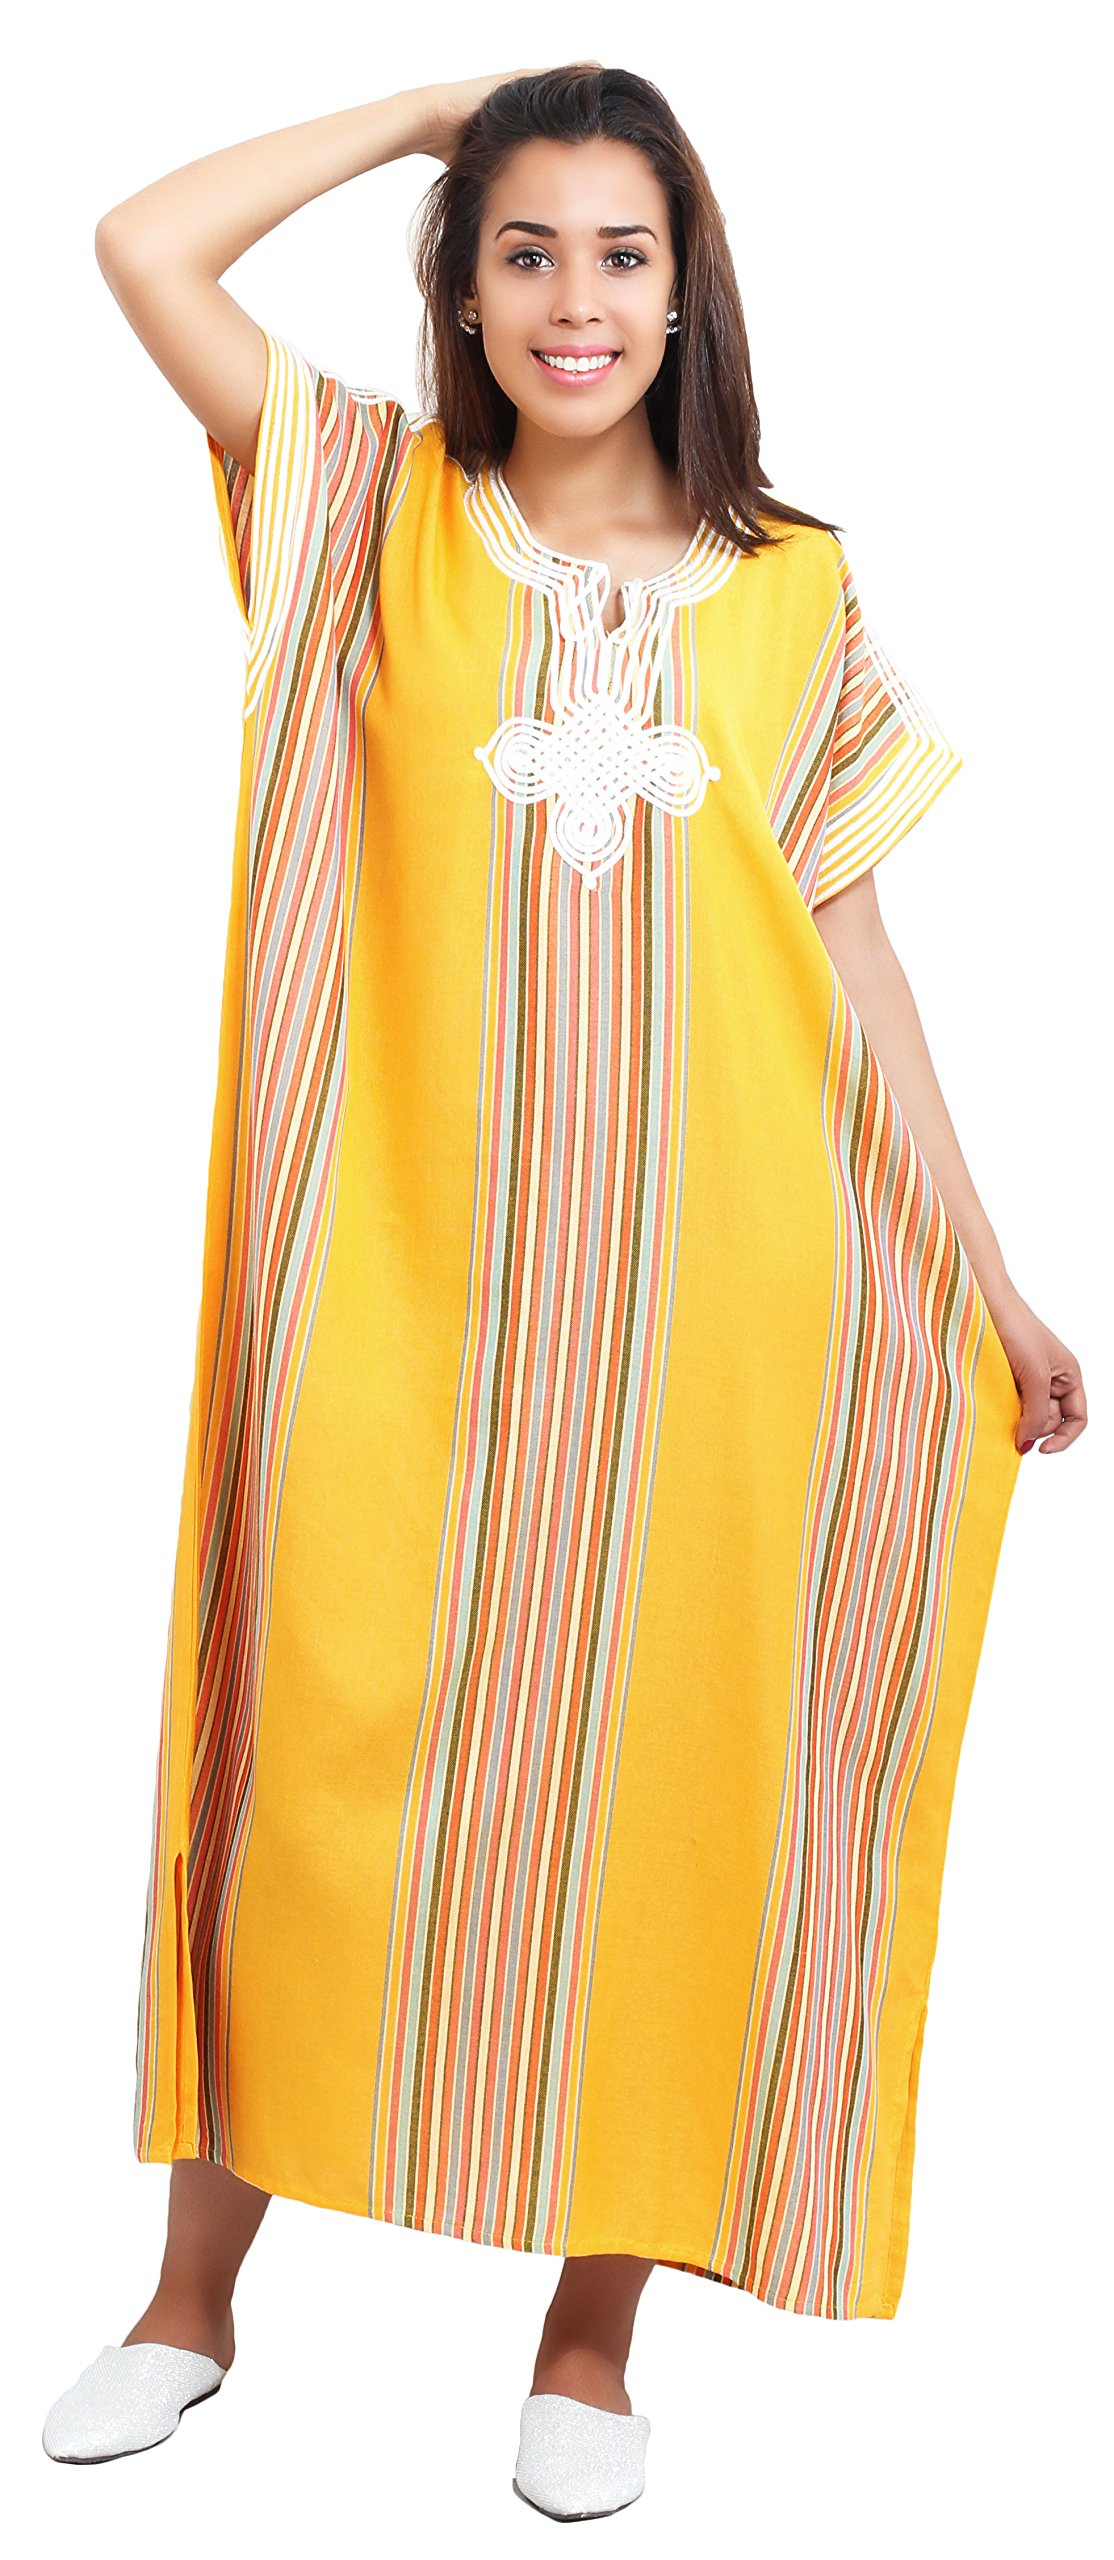 Moroccan Caftan Women Light Weight Linen Handmade with Embroidery Fits Small To Large Coverup Loungewear Ethnic Design Yellow